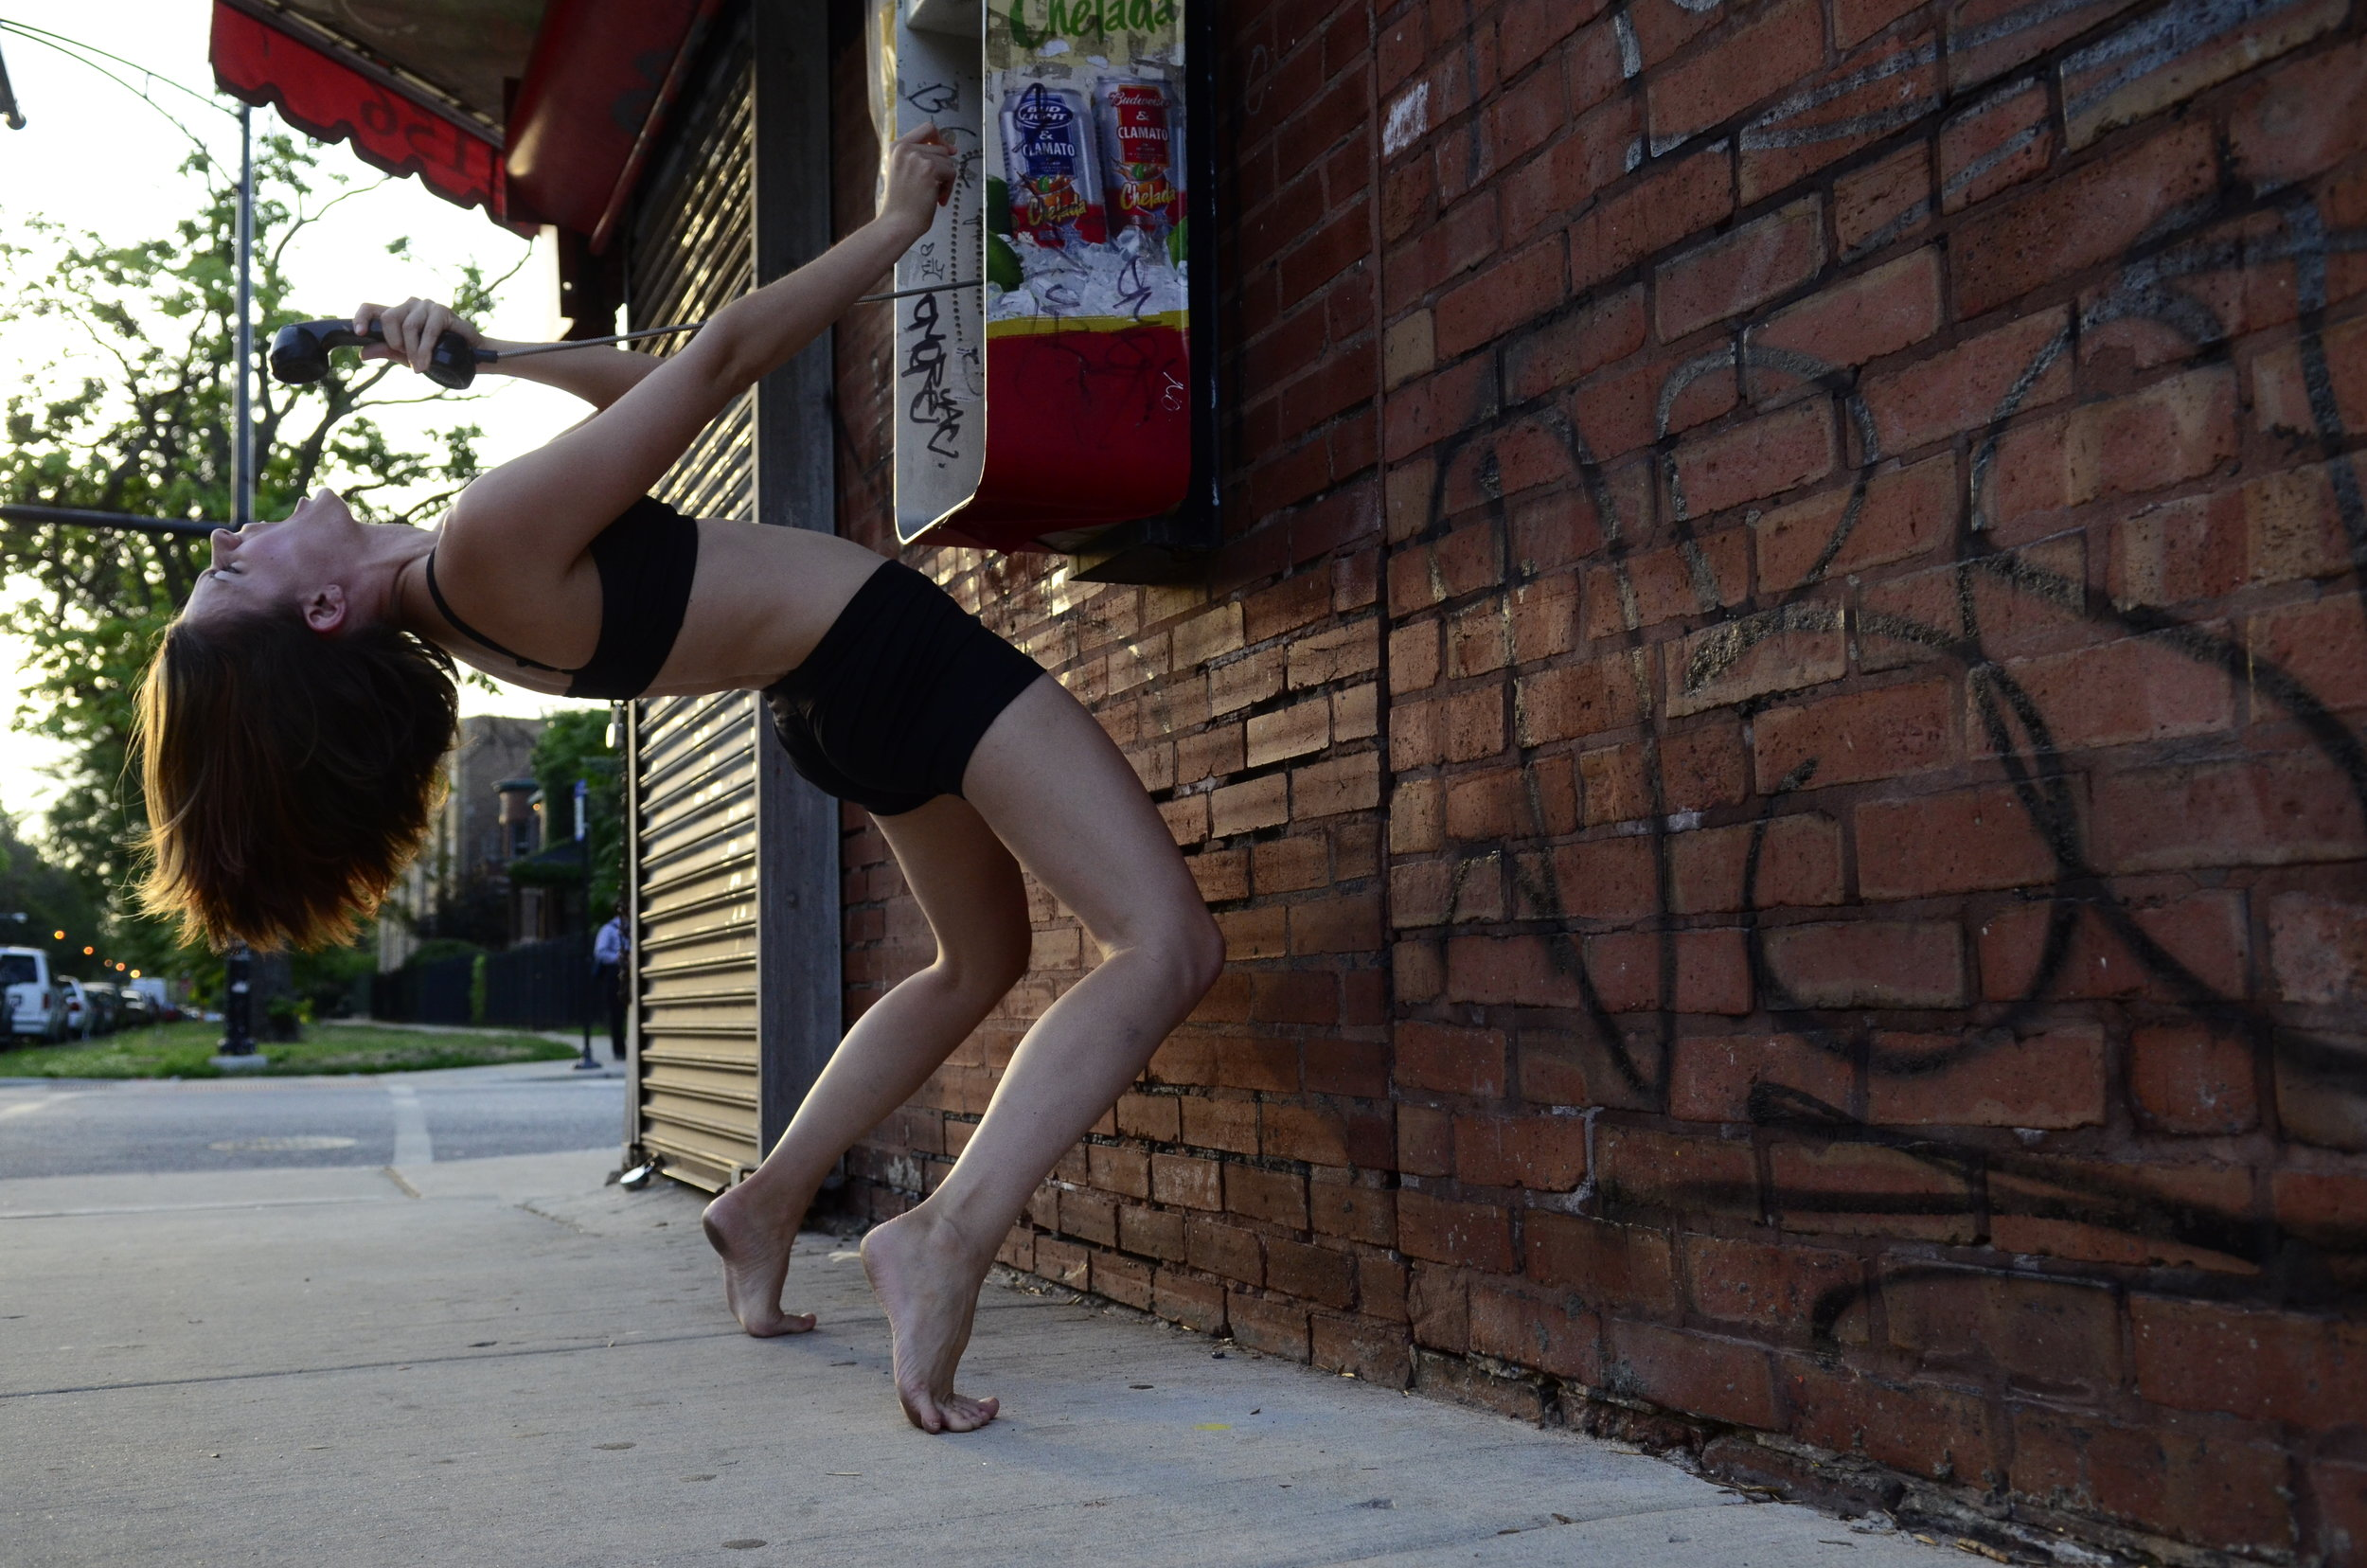 Photo by Jeff White:  Christine is at a payphone on a brick wall dressed in black shorts and a sports bra. The phone and wall are graffitied. She is arching back, one had inserting a coin into the payphone, other hand gripping the receiver away from her face, mouth open as if yelling. In the distance a residential street shines soft light though her brown hair which is loose.